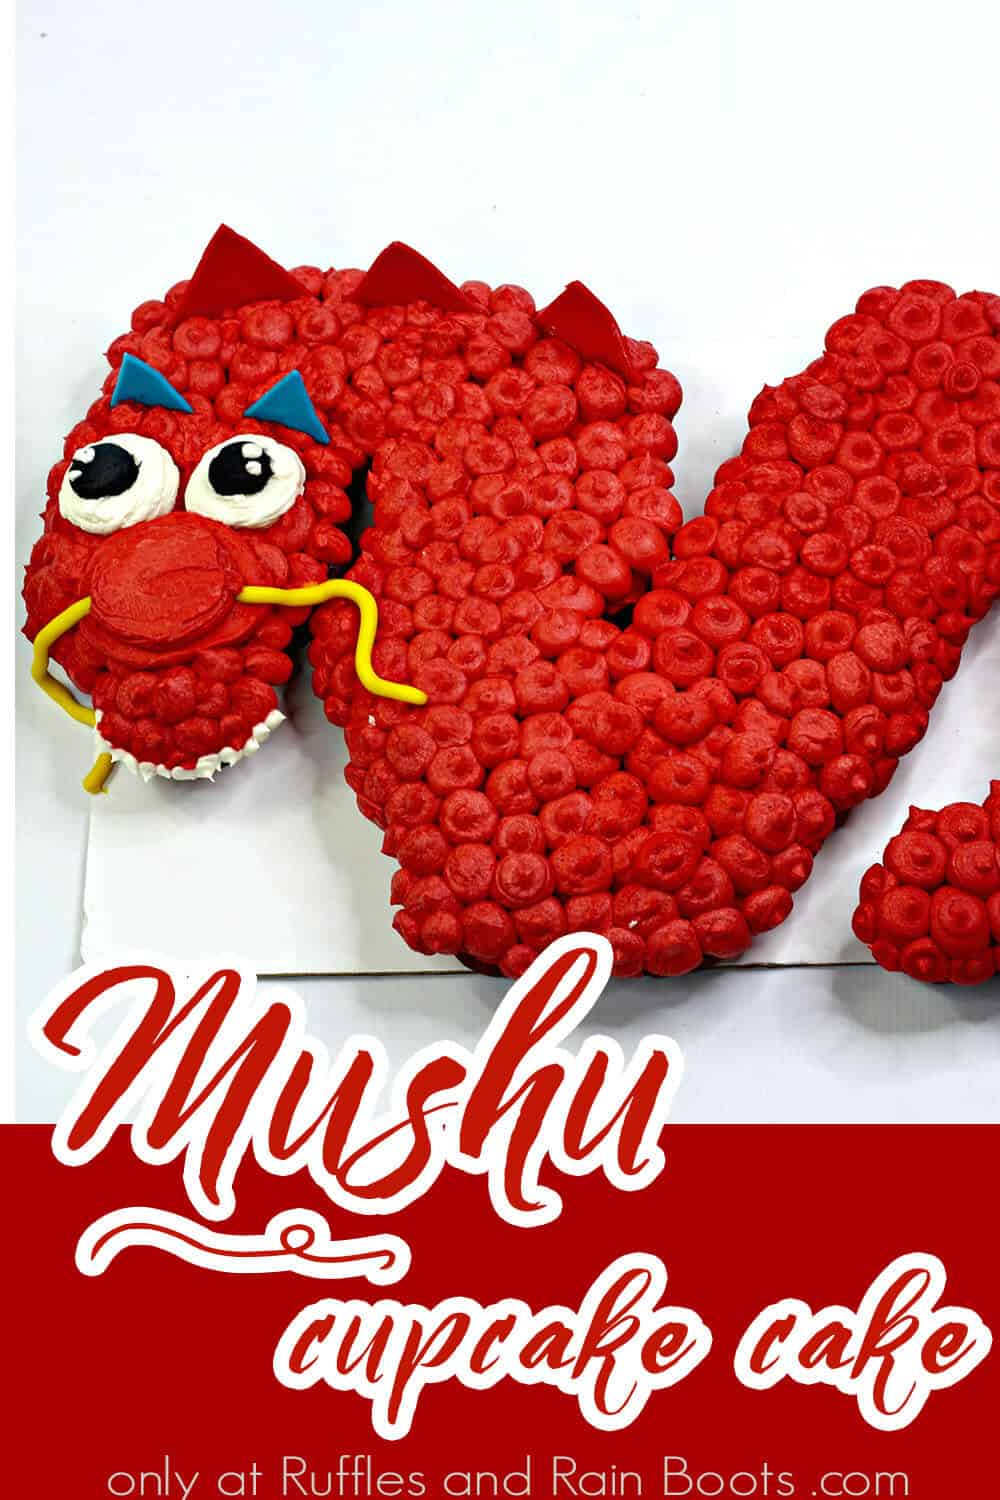 easy disney princess cupcake decorating idea mulan with text which reads mushu cupcake cake